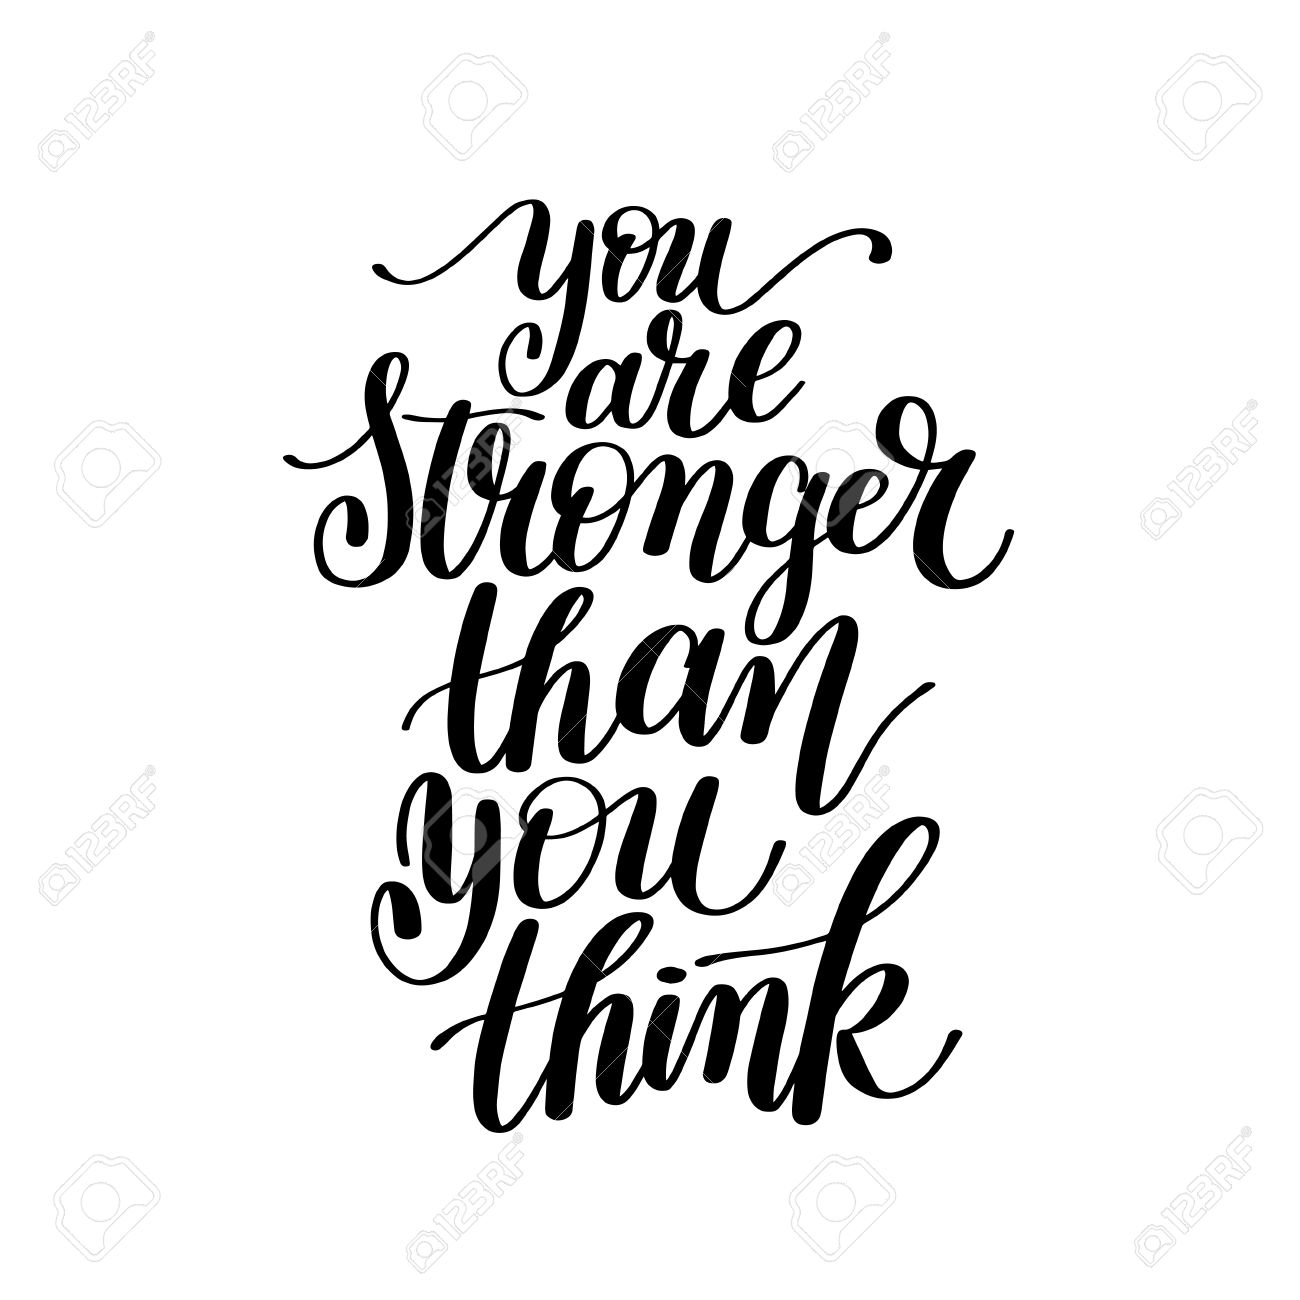 You Are Stronger Than You Think Vector Text Phrase Image